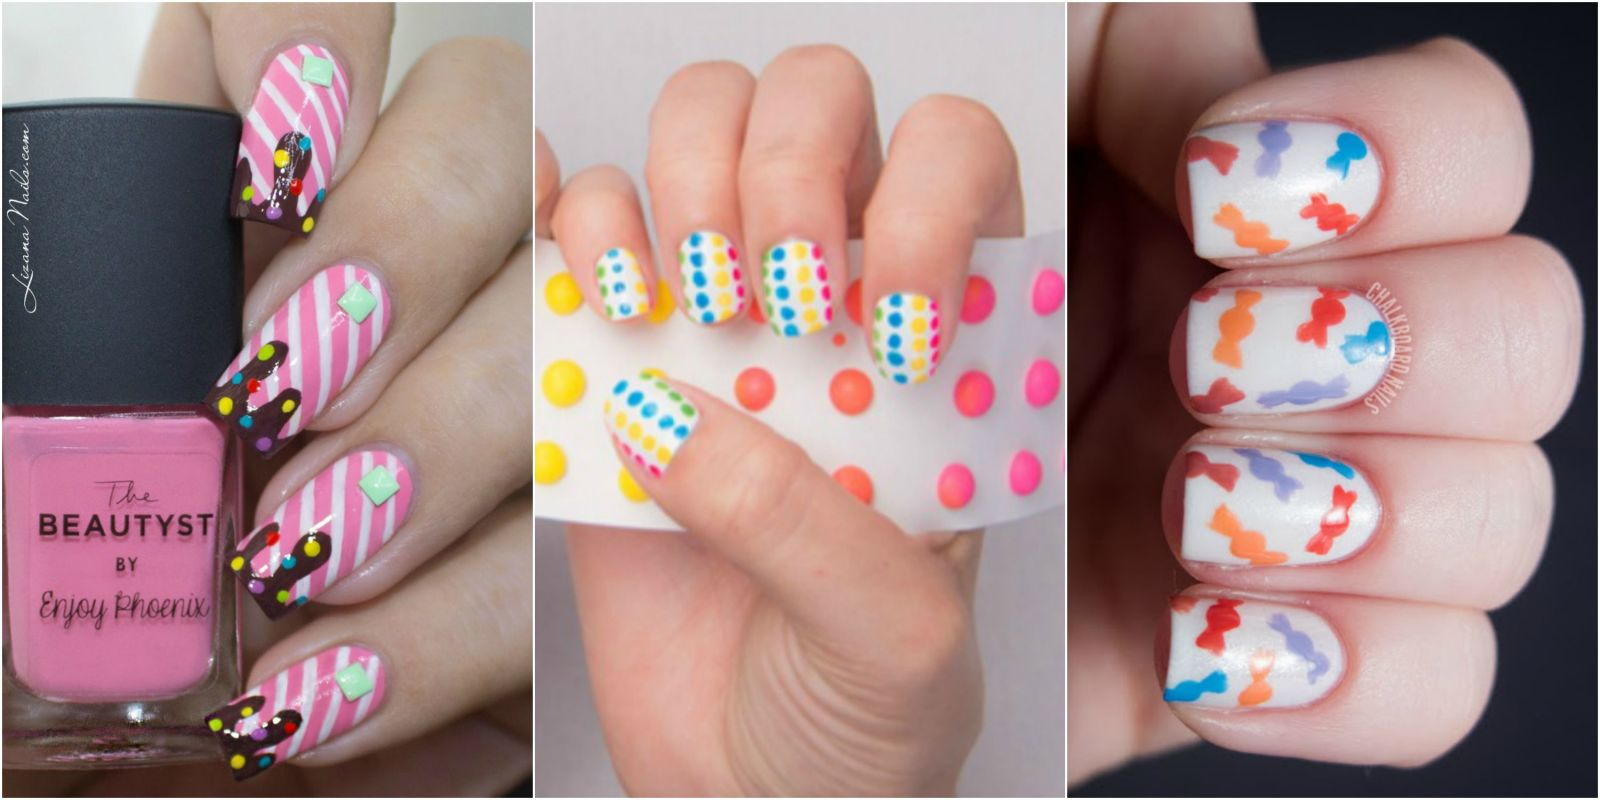 12 candy nail art designs dessert and food nail art ideas prinsesfo Choice Image